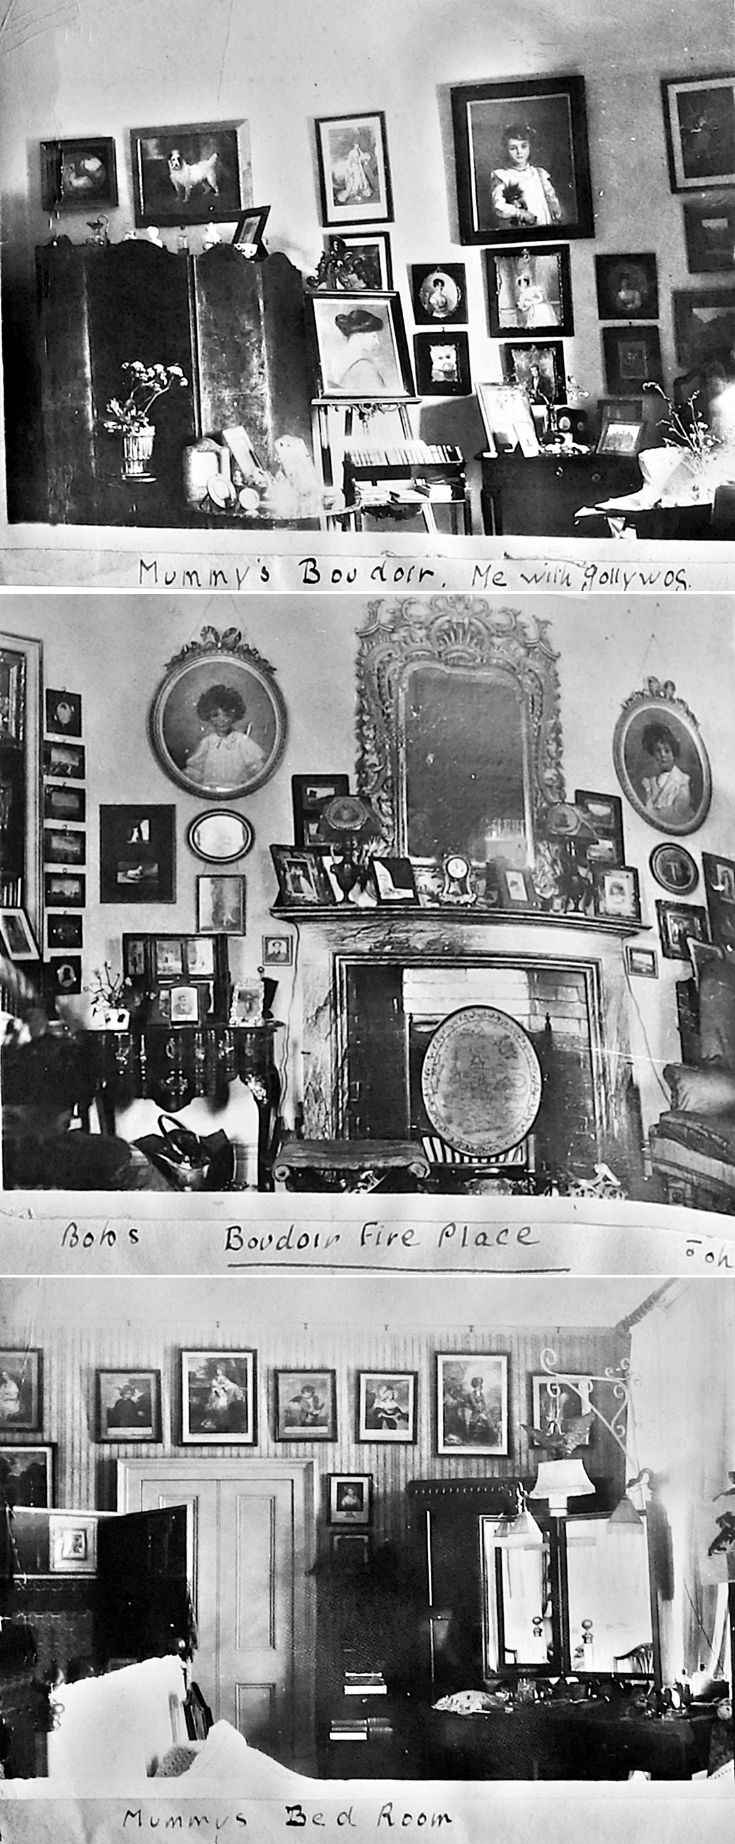 6 Interior Castle Newe c 1910